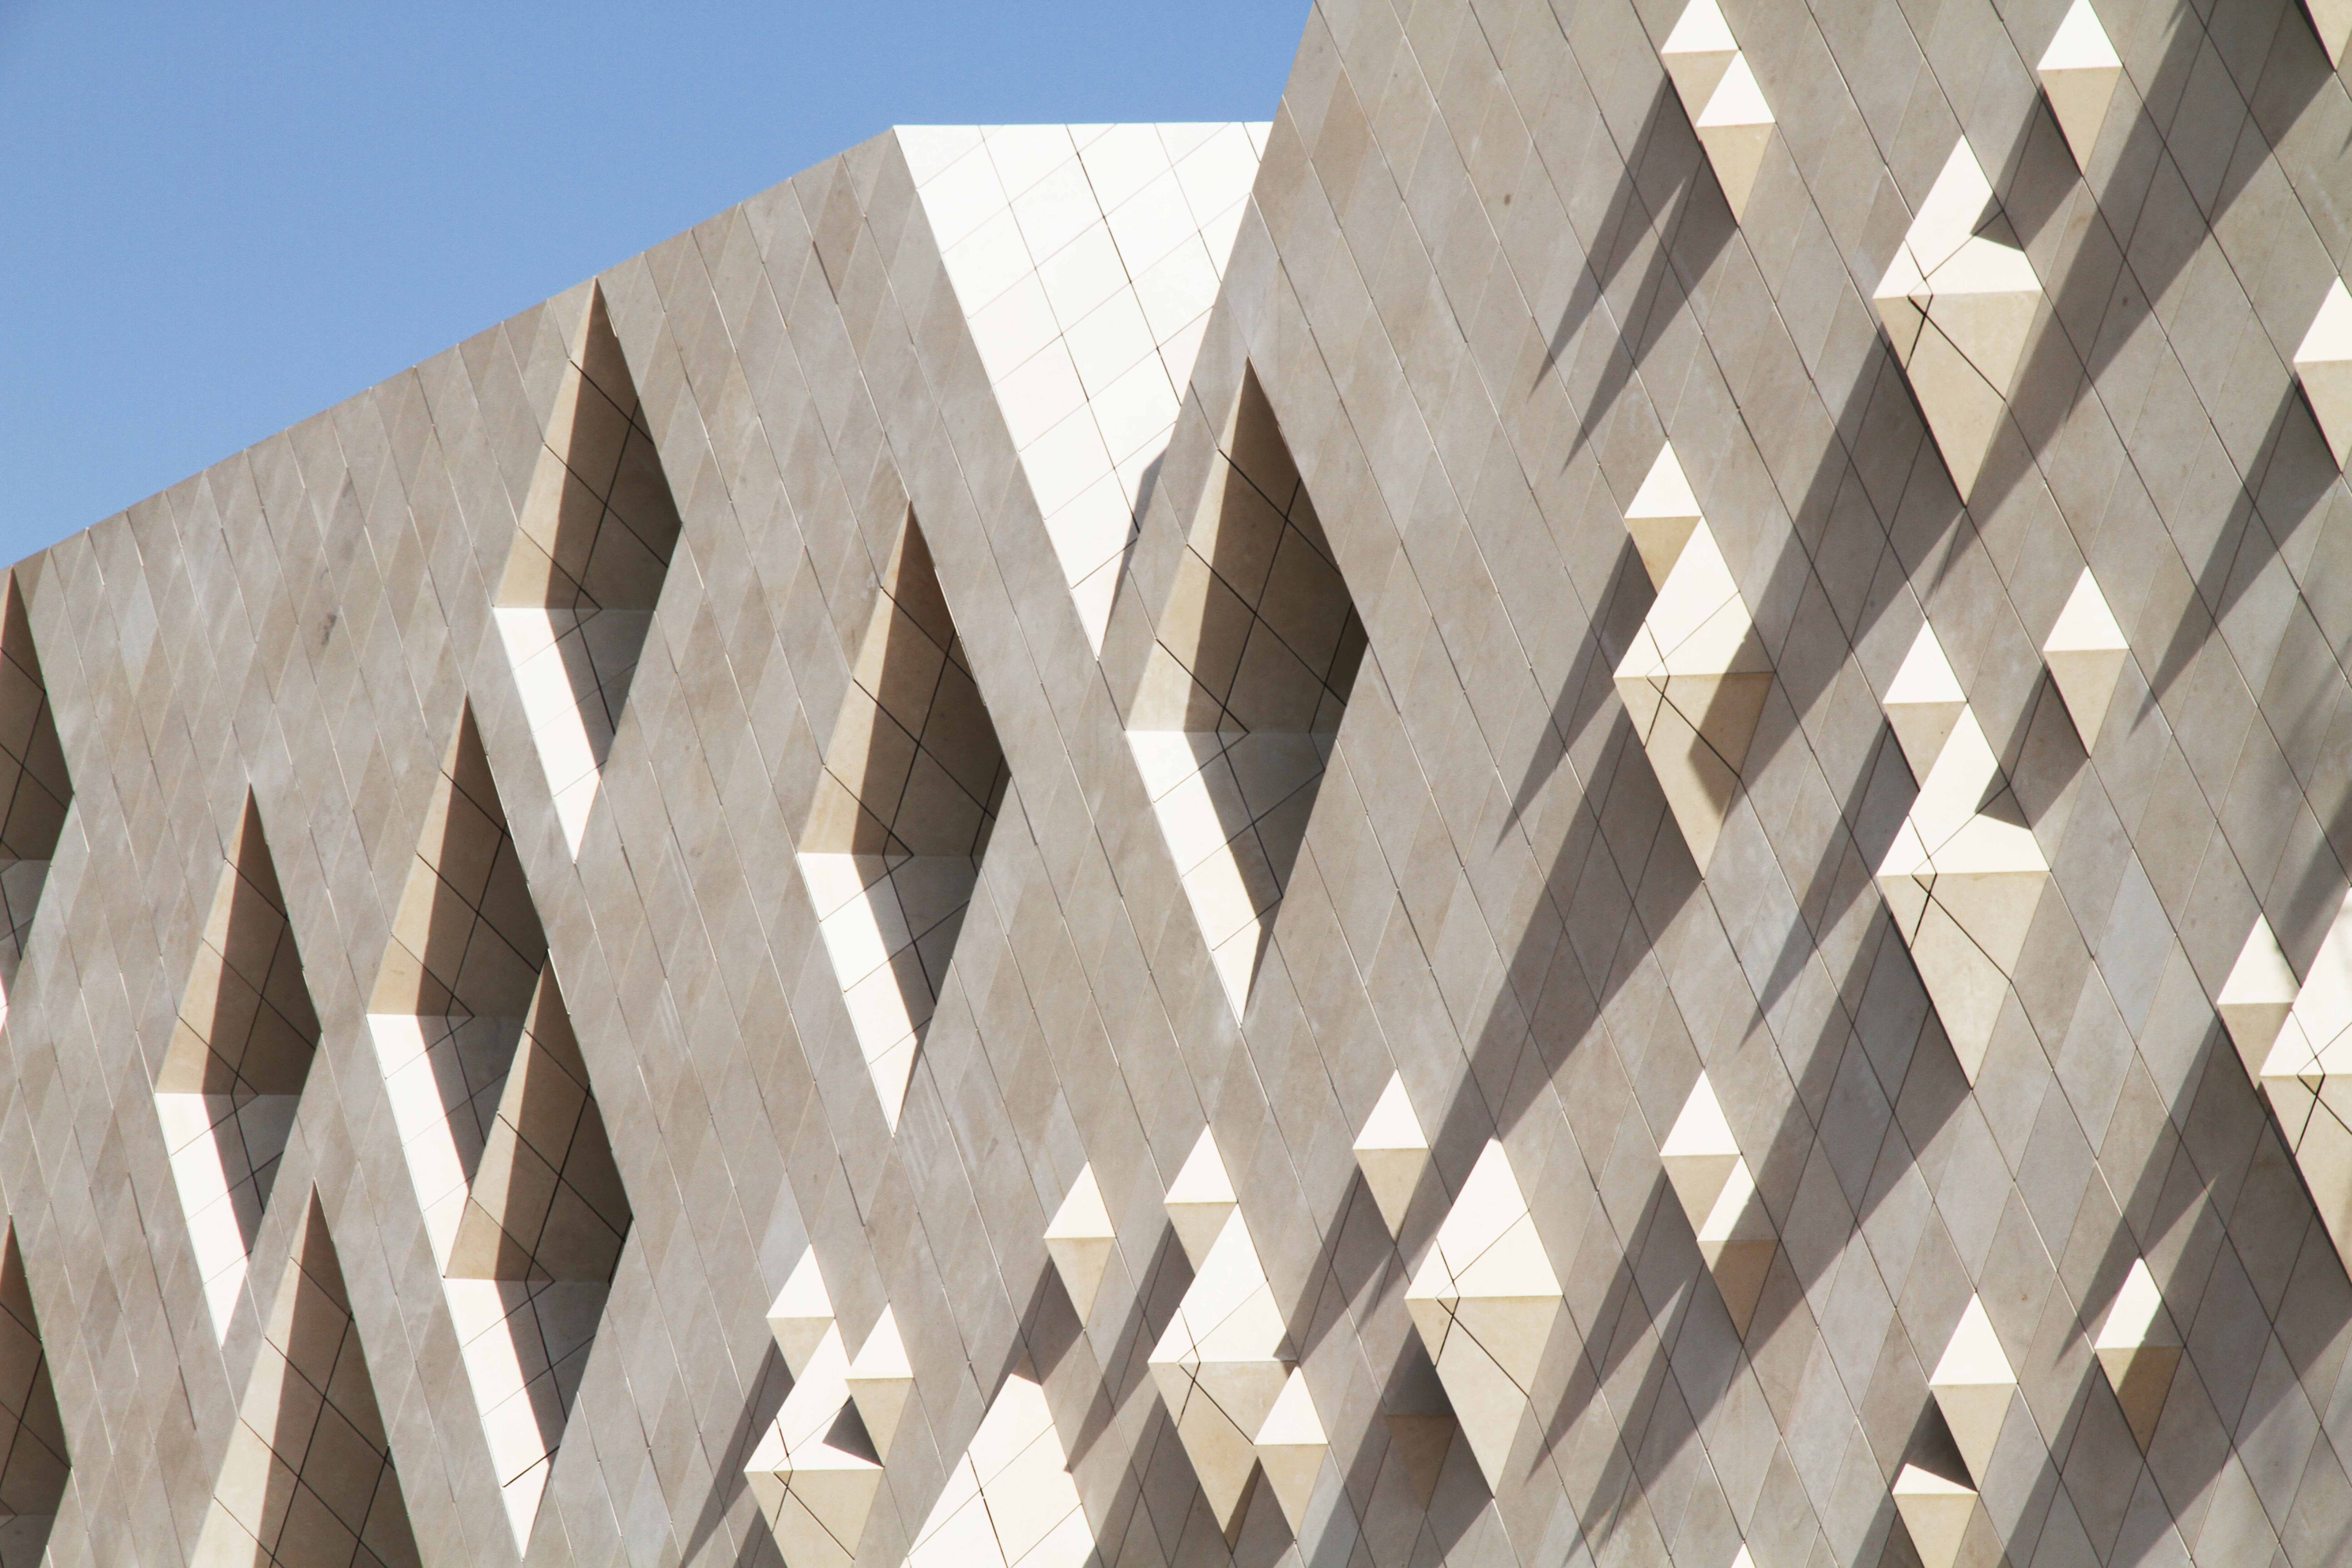 Institute of Diplomatic Studies in Riyadh, Saudi Arabia. Elaborated façades will make the large building vary vividly when passing by, and like looking through a veil one will sense the life and activities within the building. Photo by Marisa Ingvartsen